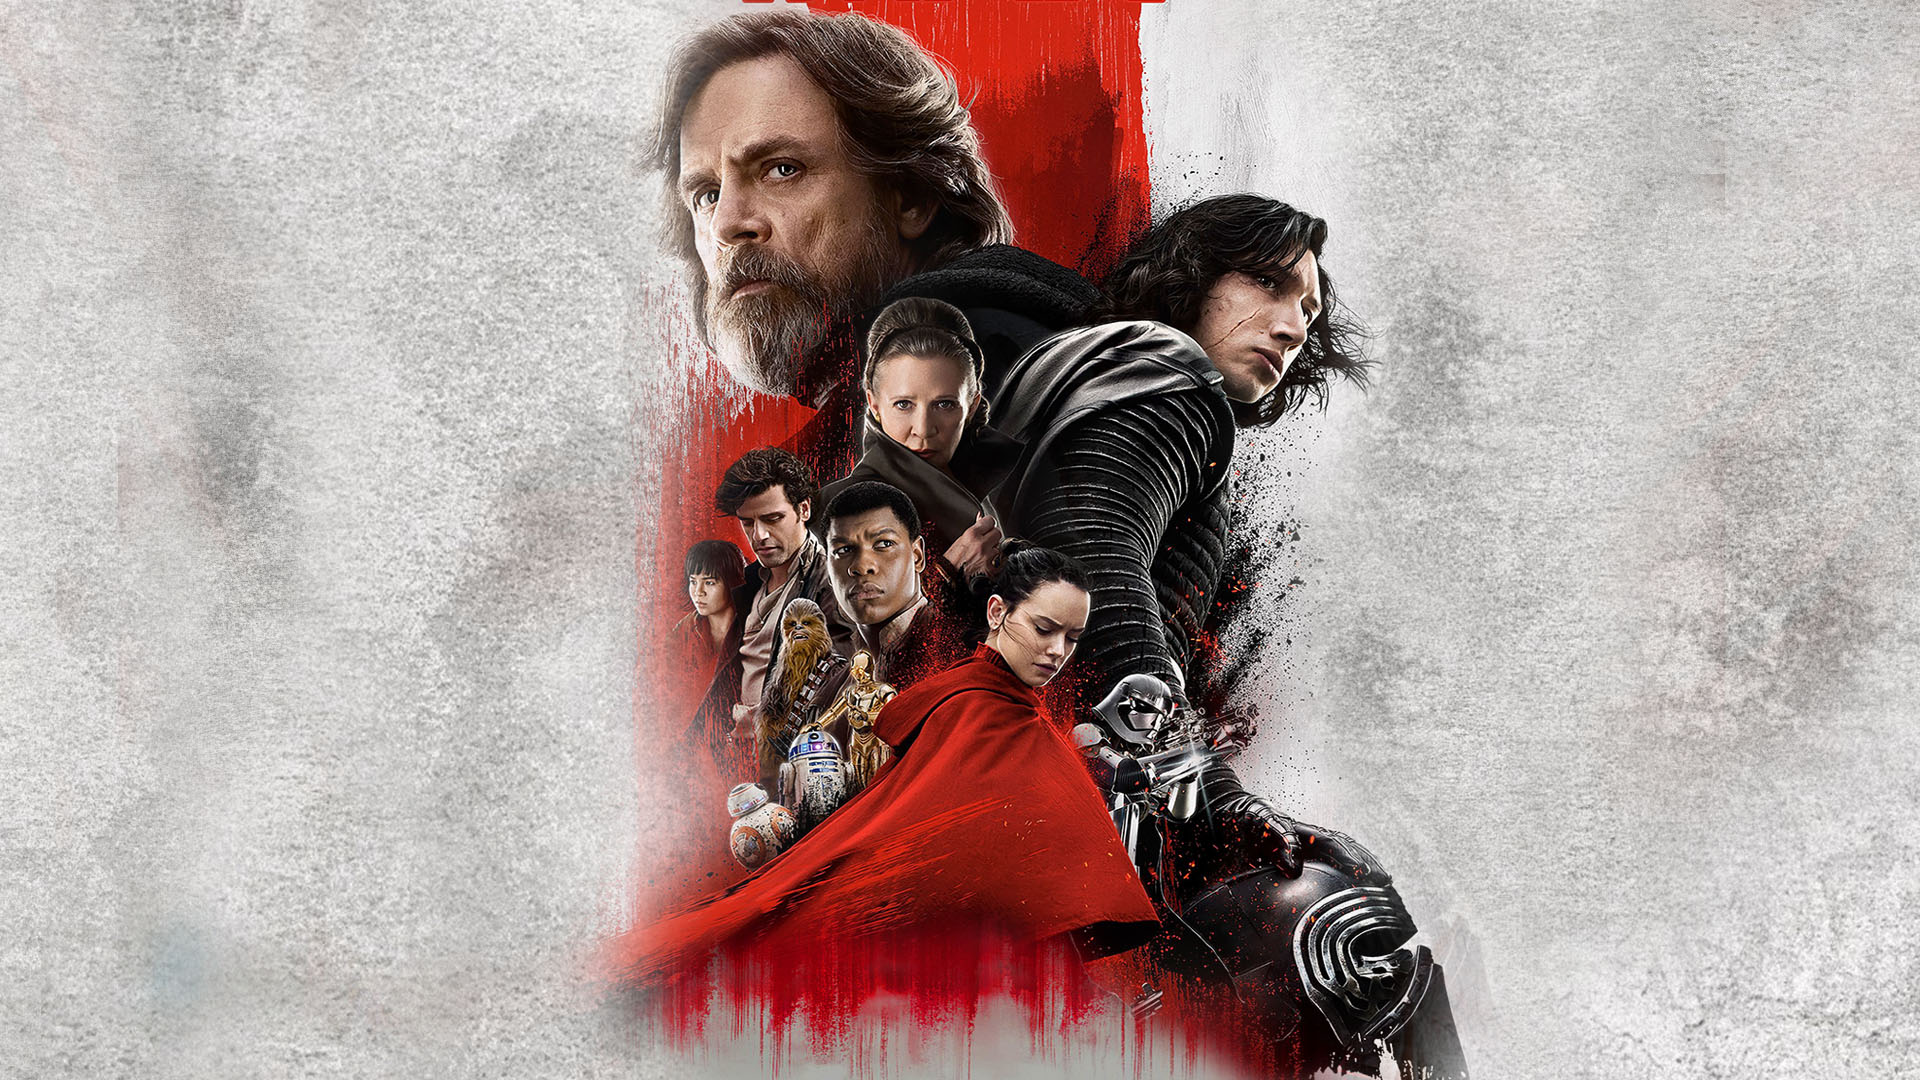 Wallpaper Of Star Wars The Last Jedi Actors Poster Background